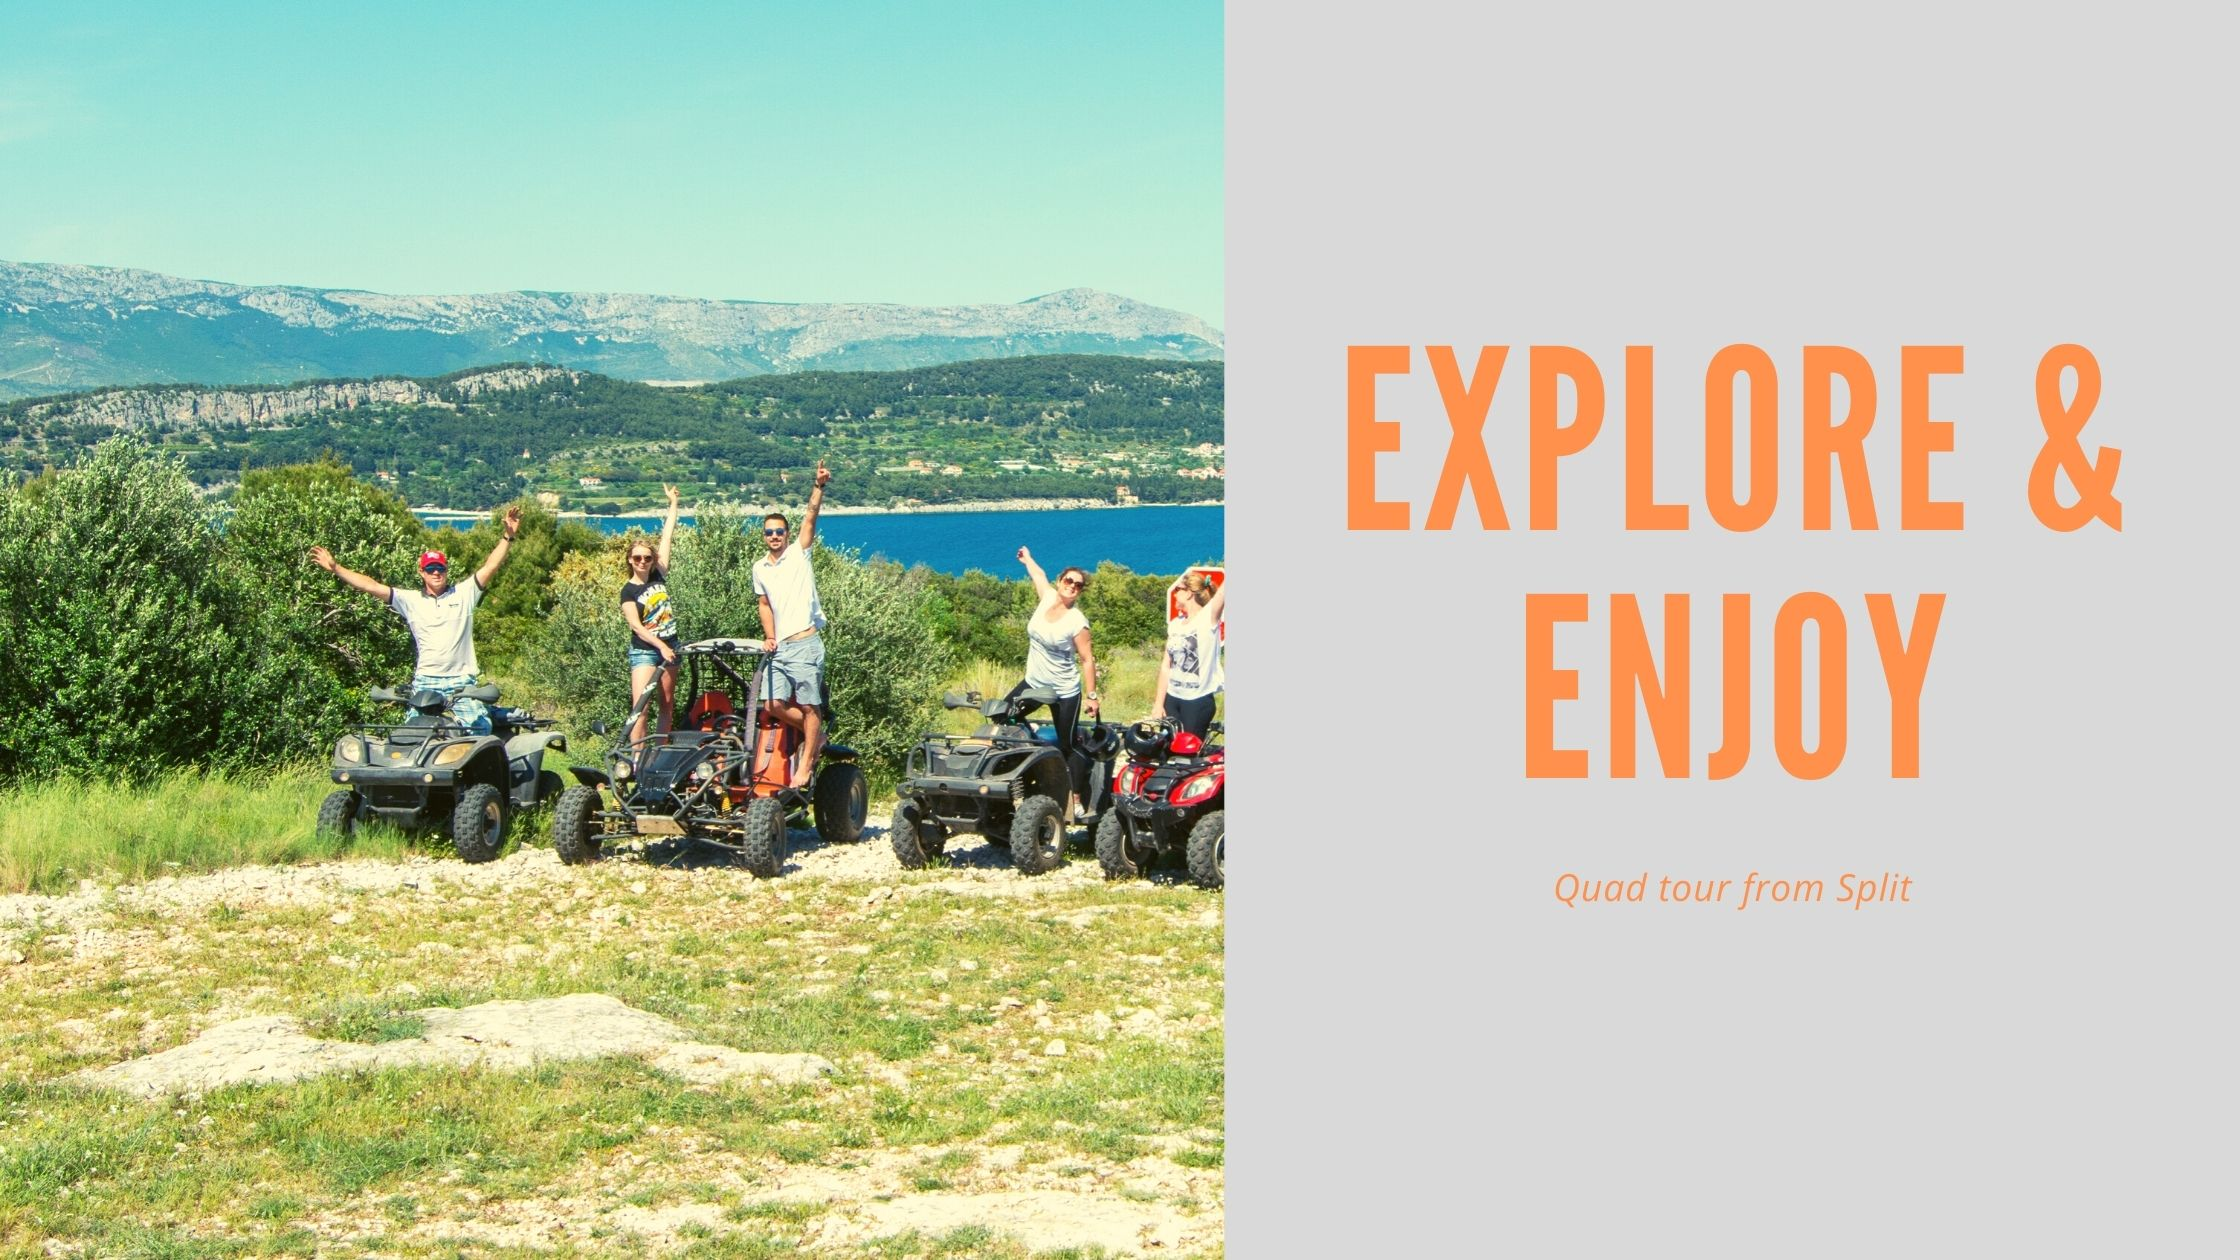 Quad excursion from Split